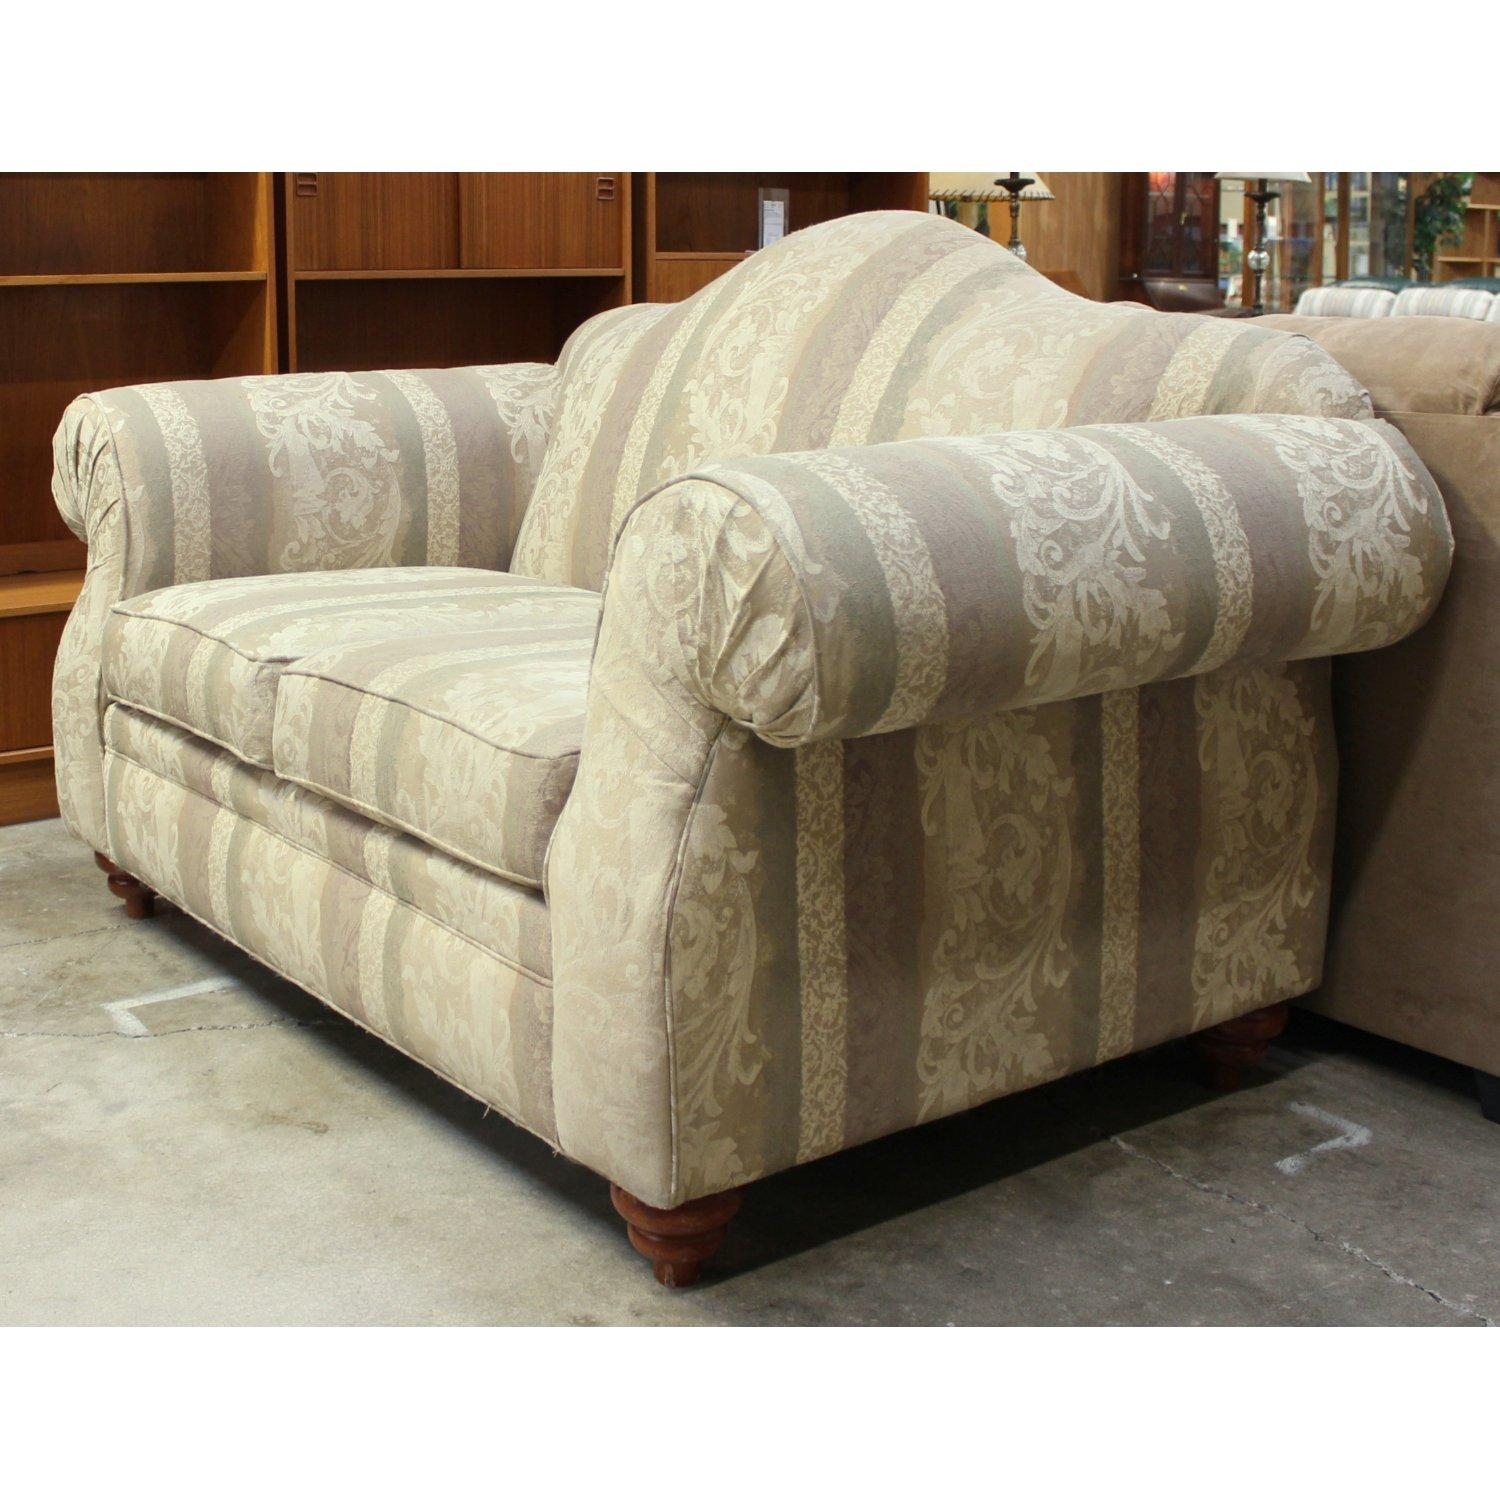 Alan White Camelback Loveseat | Upscale Consignment Inside Alan White Sofas (View 13 of 20)